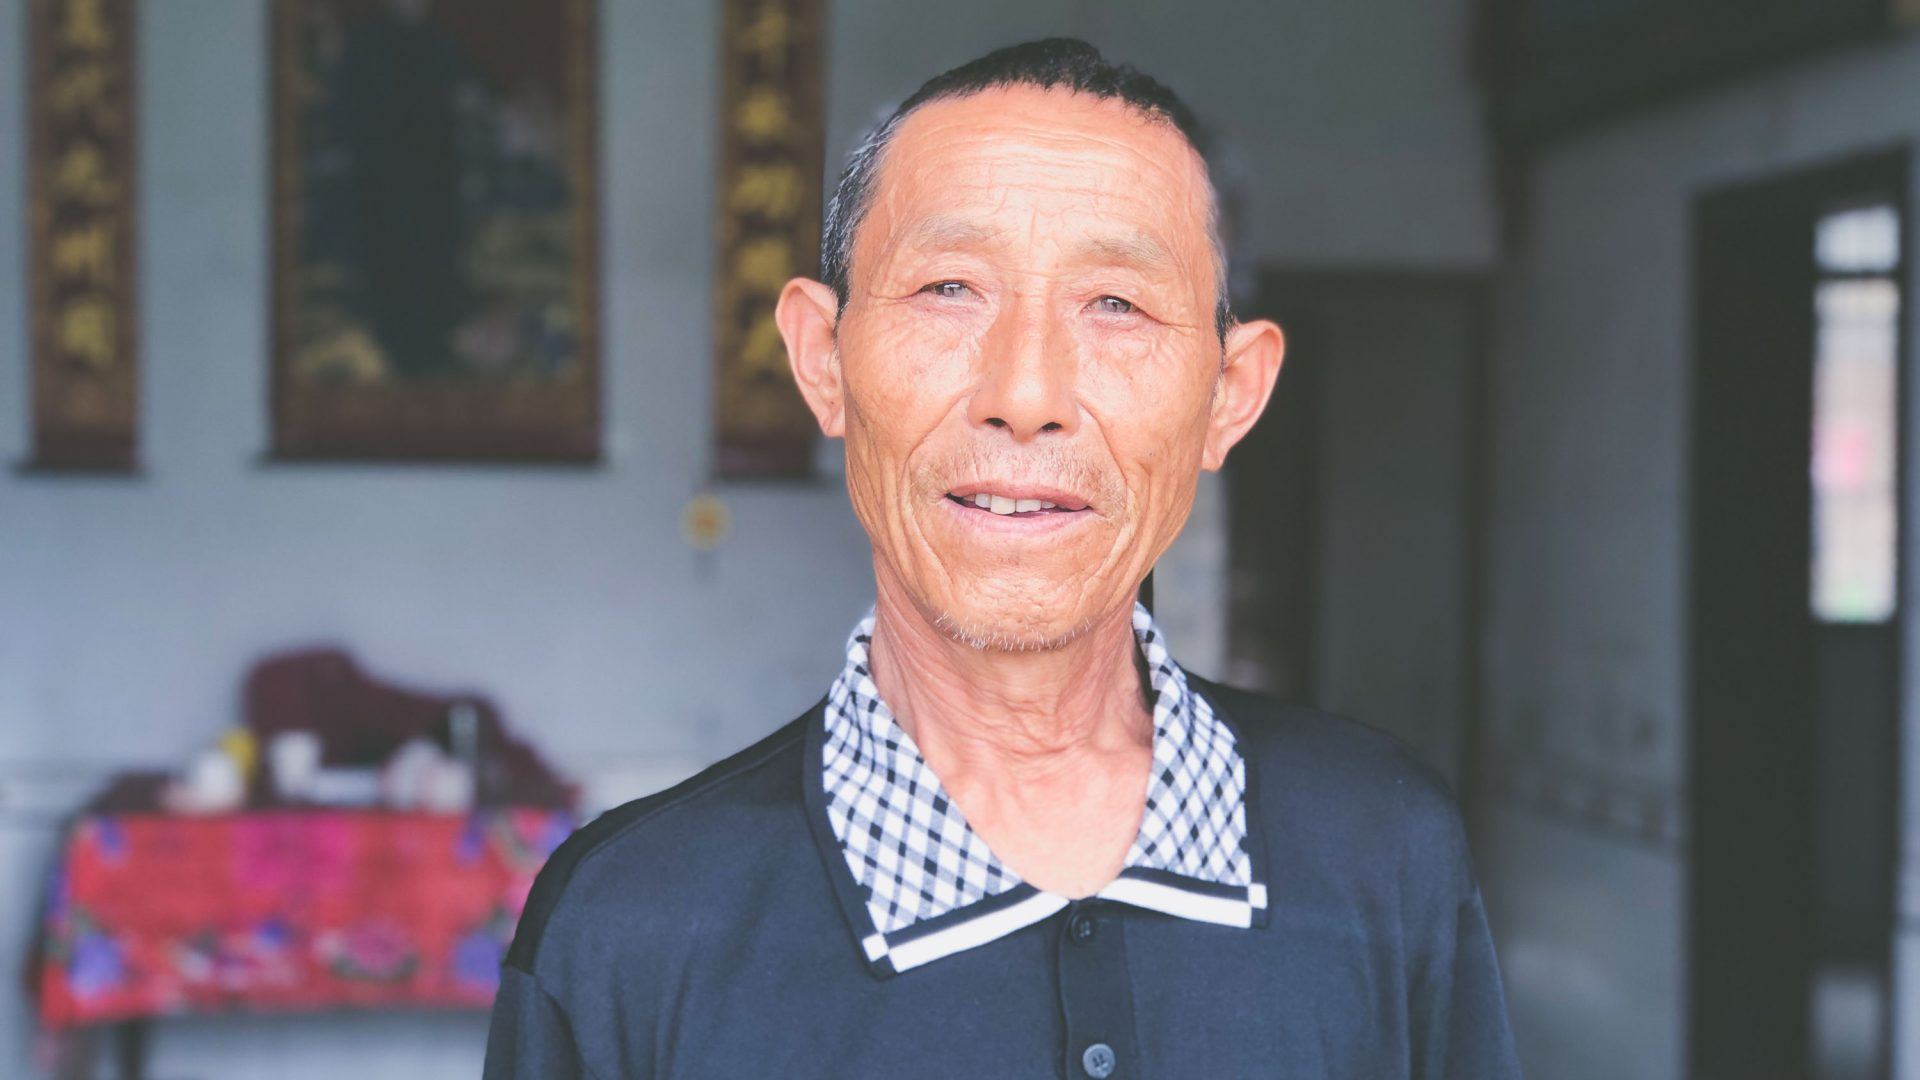 Zunzhu, a farmer, talks about the Tujia minority who live in the surrounding hills.